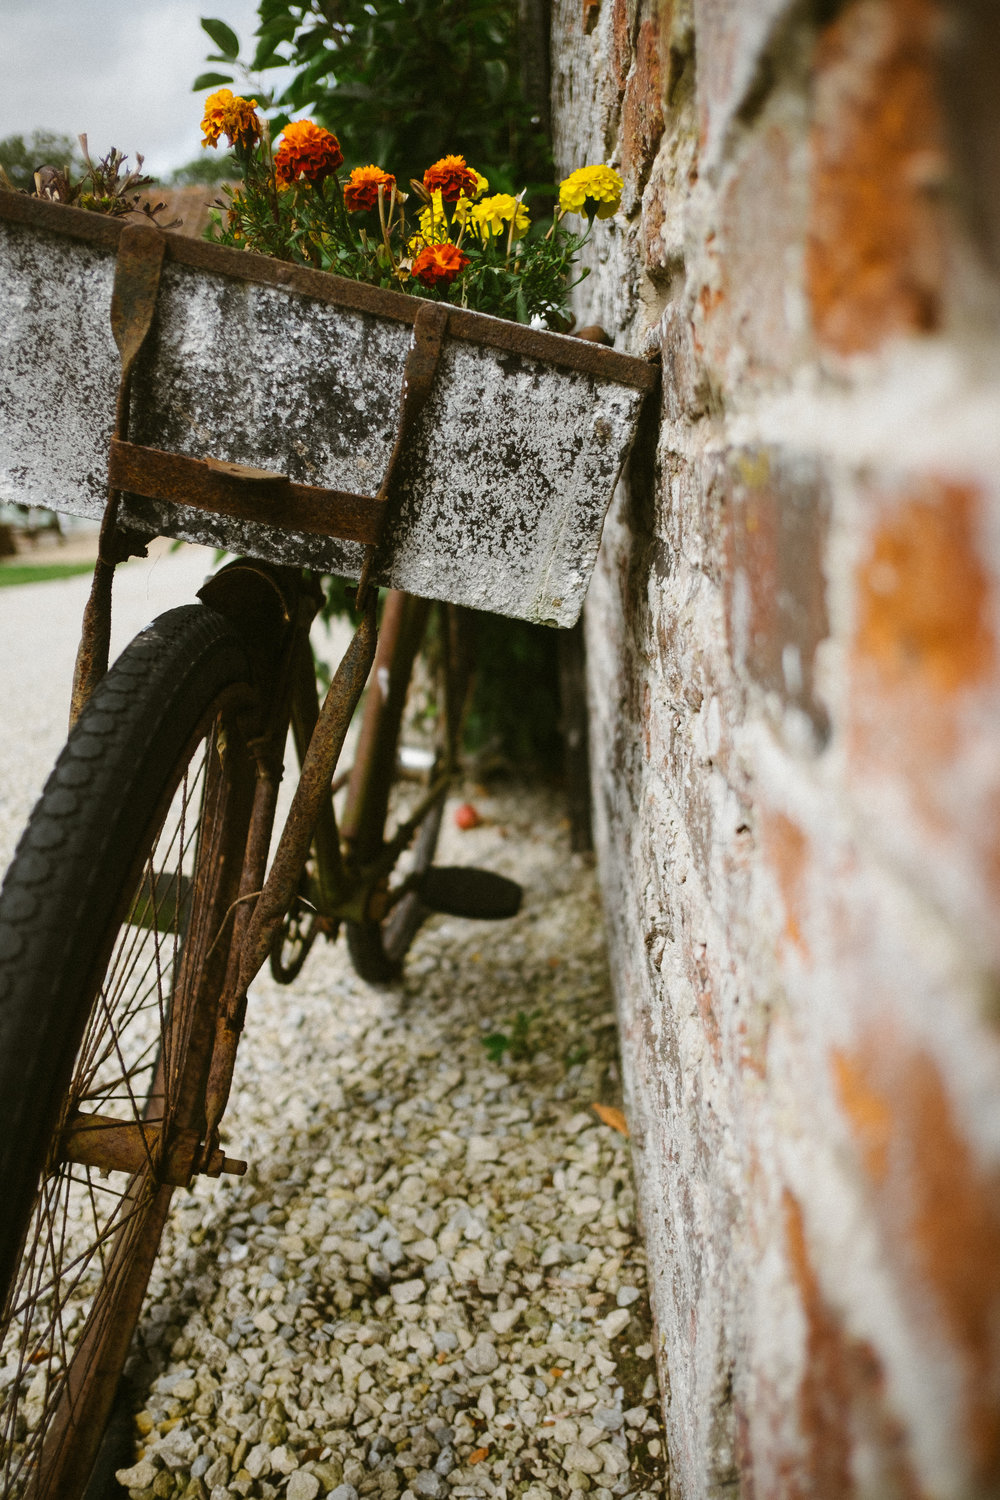 Rusty bike with colourful flowers in basket leaning against a brick wall at Dale farm wedding